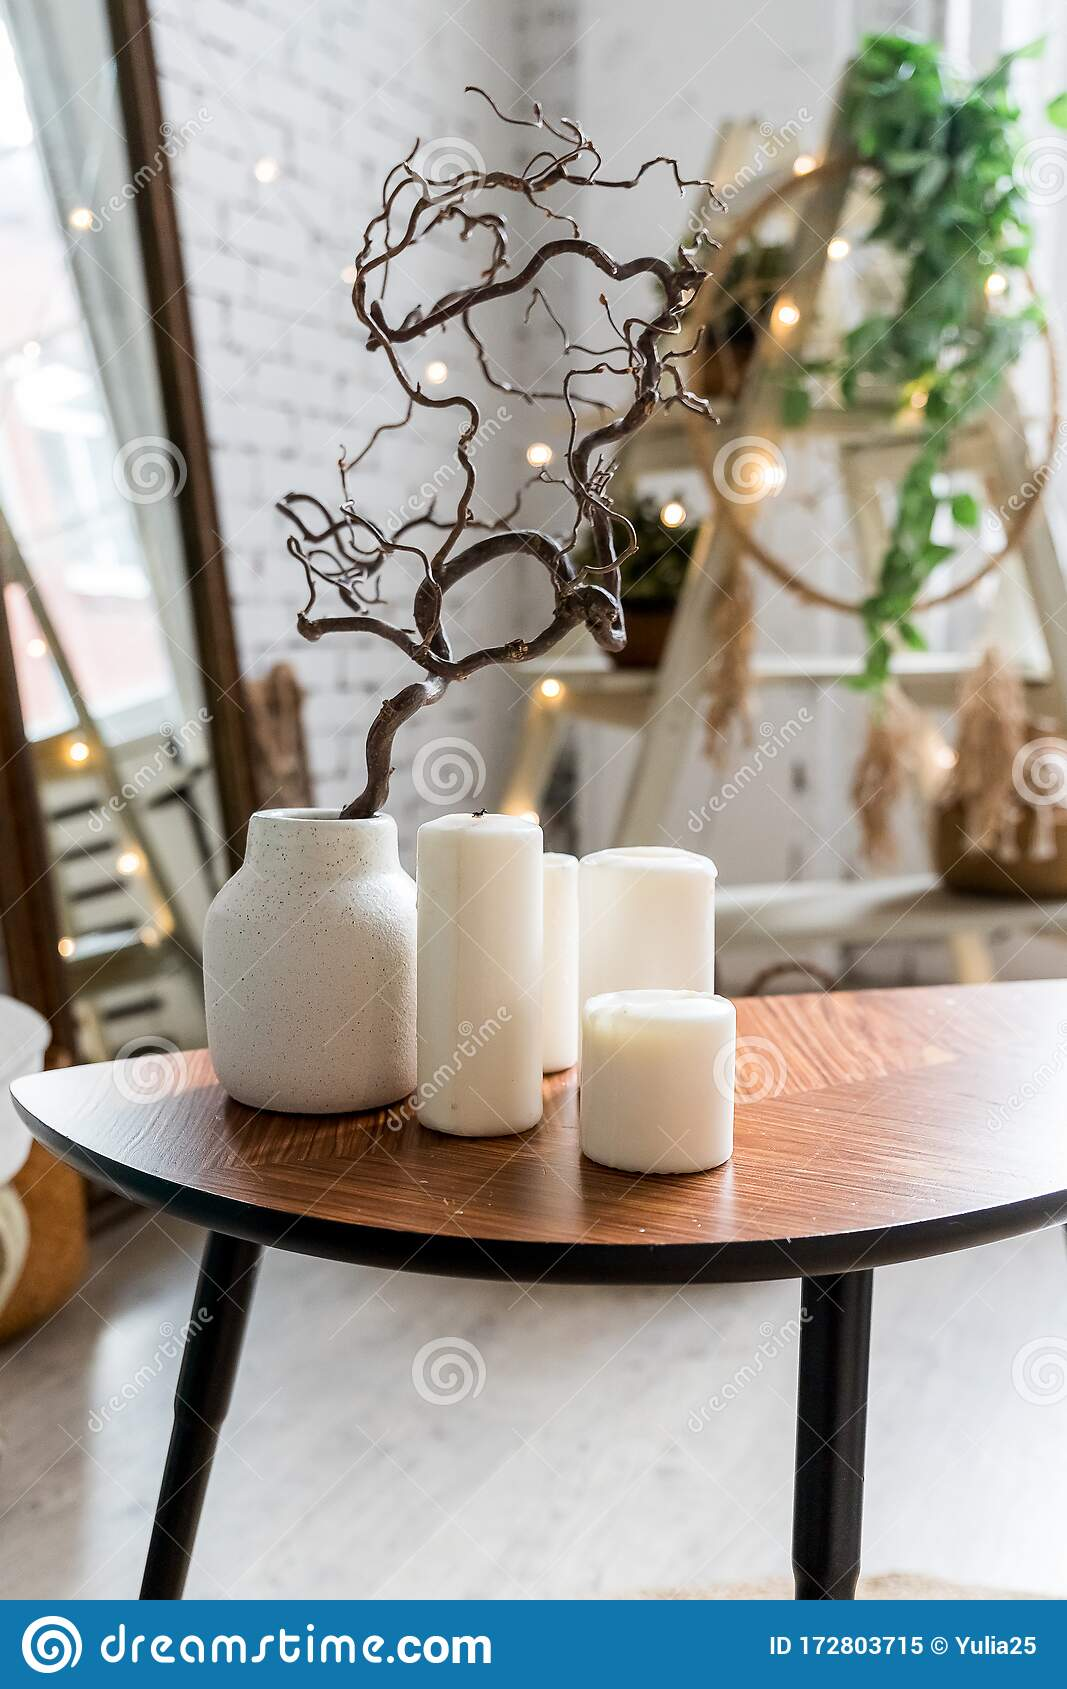 https www dreamstime com white candles wooden coffee table cozy living room interior stylish scandinavian candle plant vase image172803715